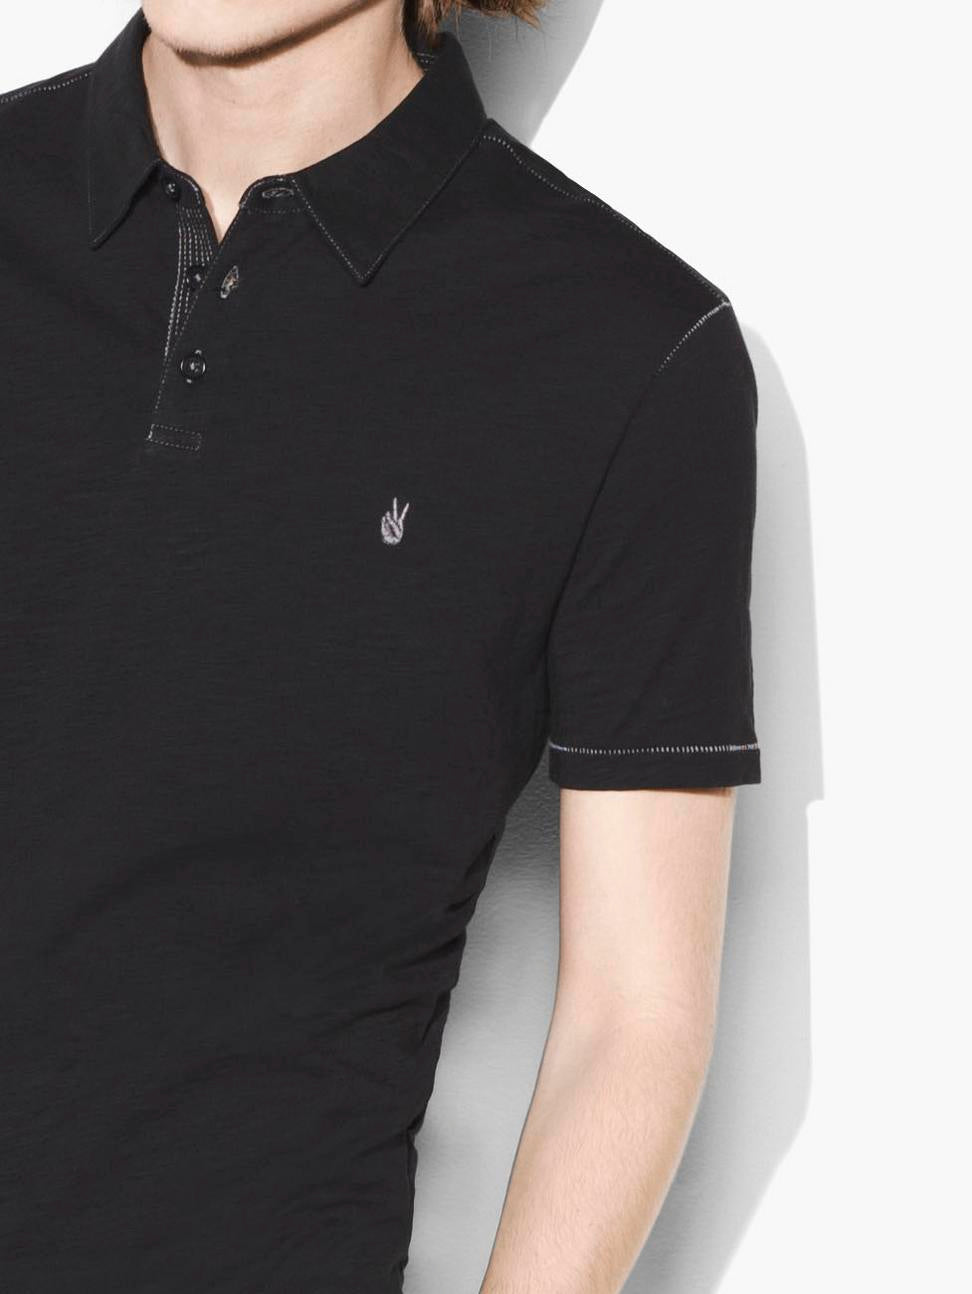 John Varvatos Peace Polo in Black